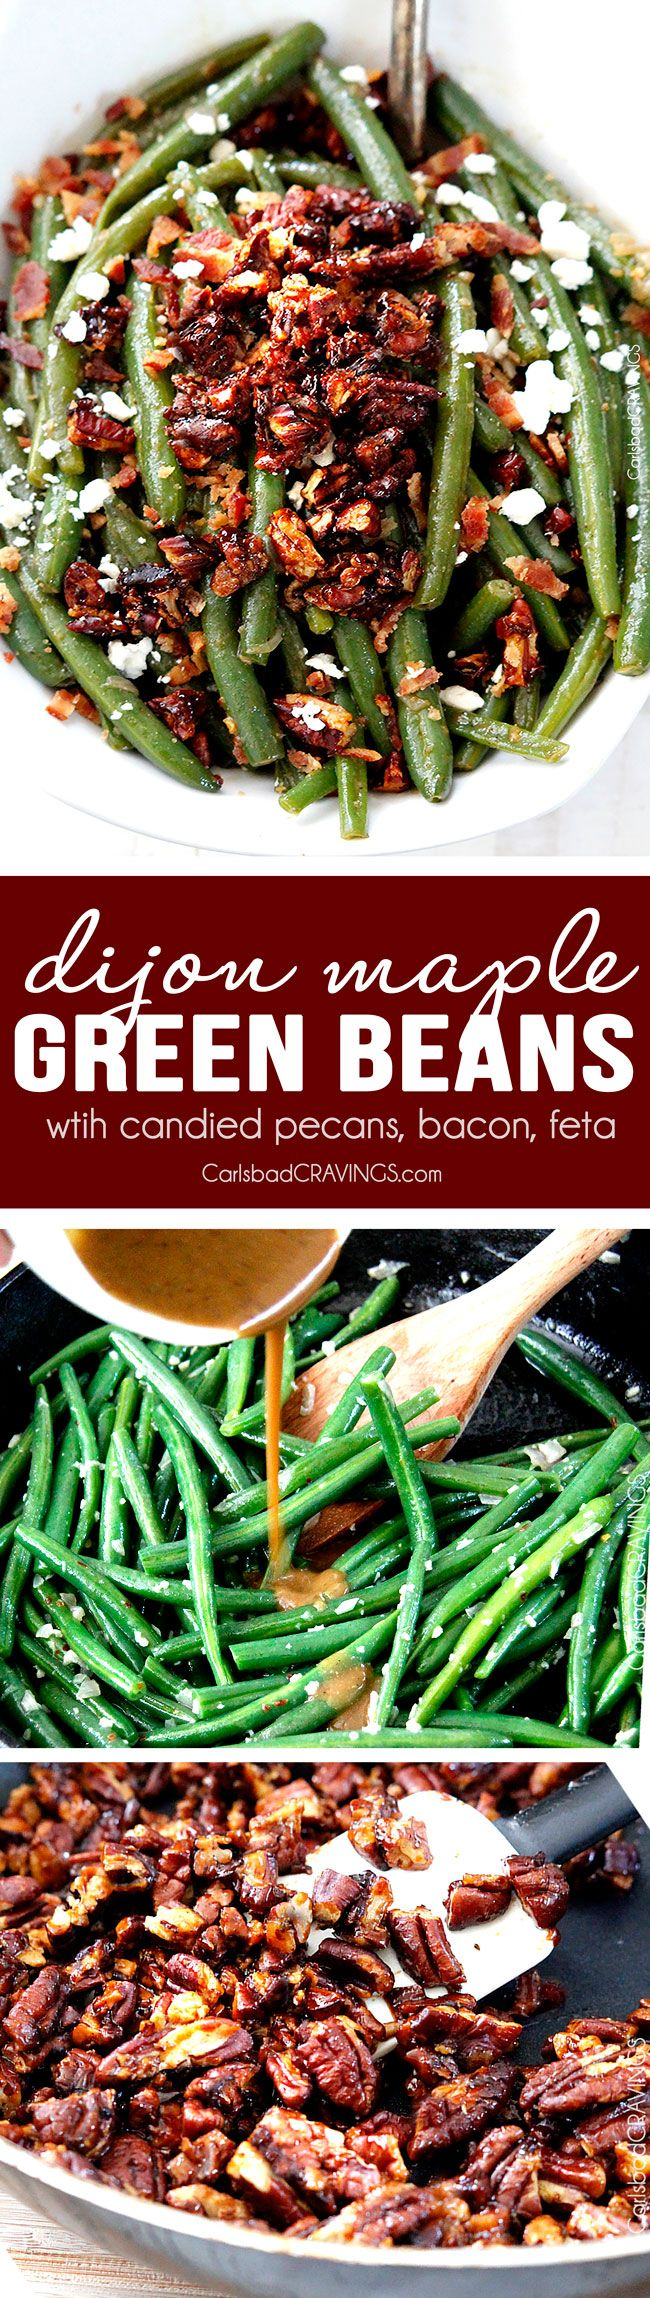 "Dijon Maple Green Beans with Caramelized Pecans, Bacon and Feta | these aren't your grandmother's green beans! Tangy, salty, sweet, crunchy, crispy, creamy AKA, ""the best green beans ever."" Not just for Thanksgiving but a year round company pleasing, delicious side. #Thanksgivingside via @carlsbadcraving"